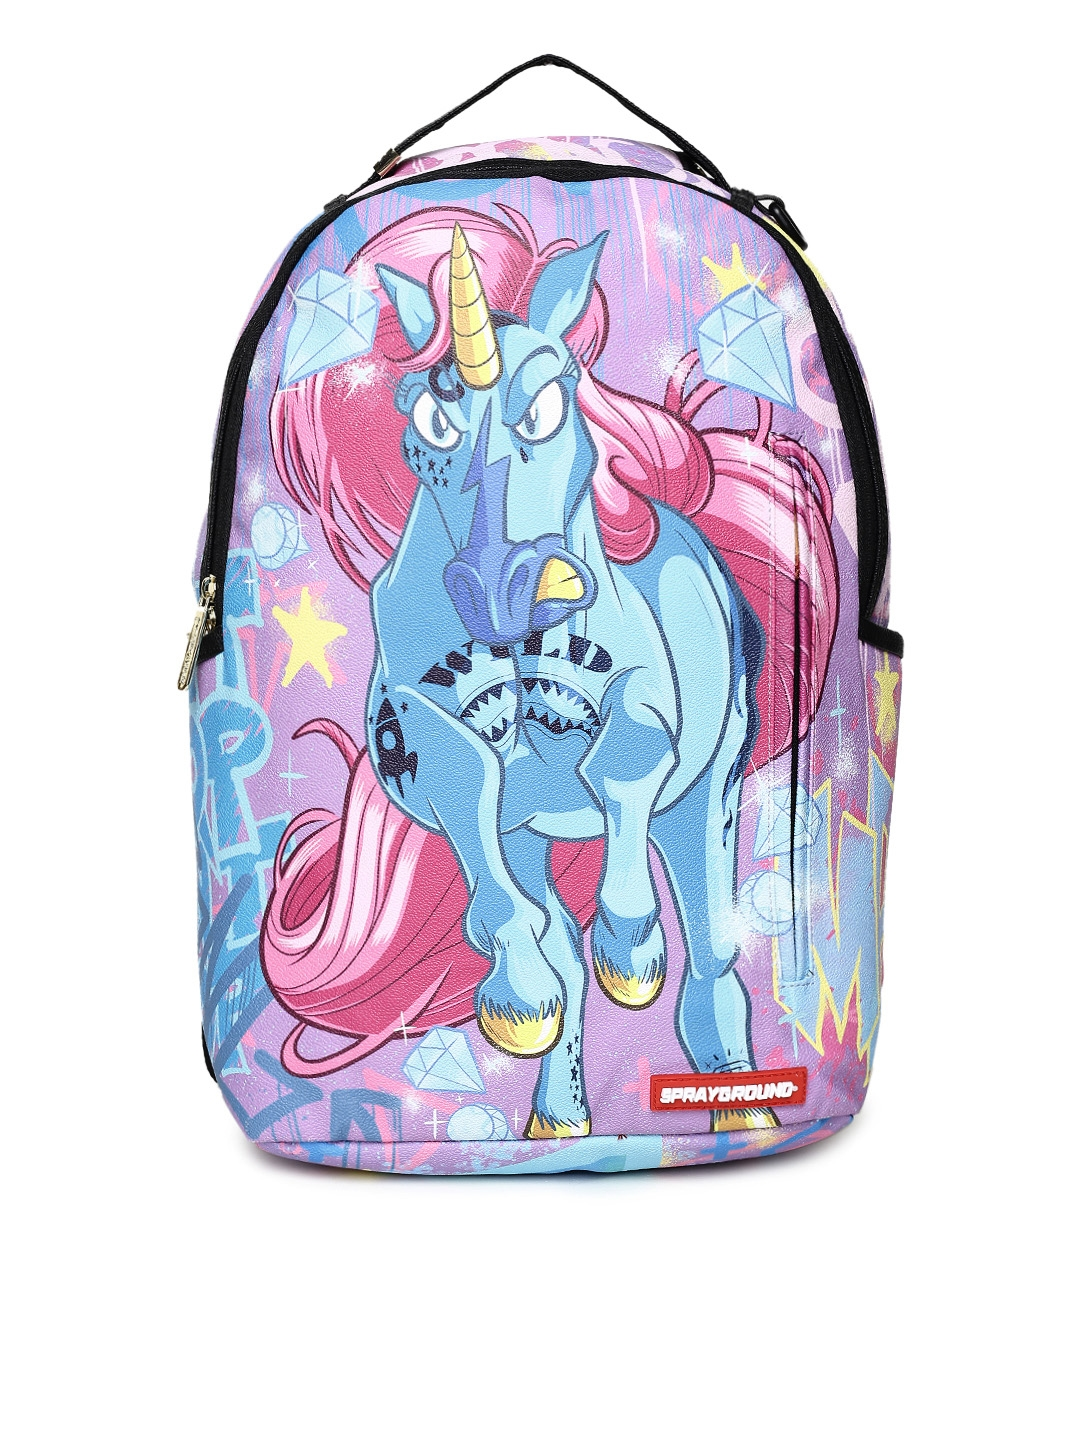 fc04396328d Buy SPRAY GROUND Unisex Blue & Pink Graphic Printed Backpack ...